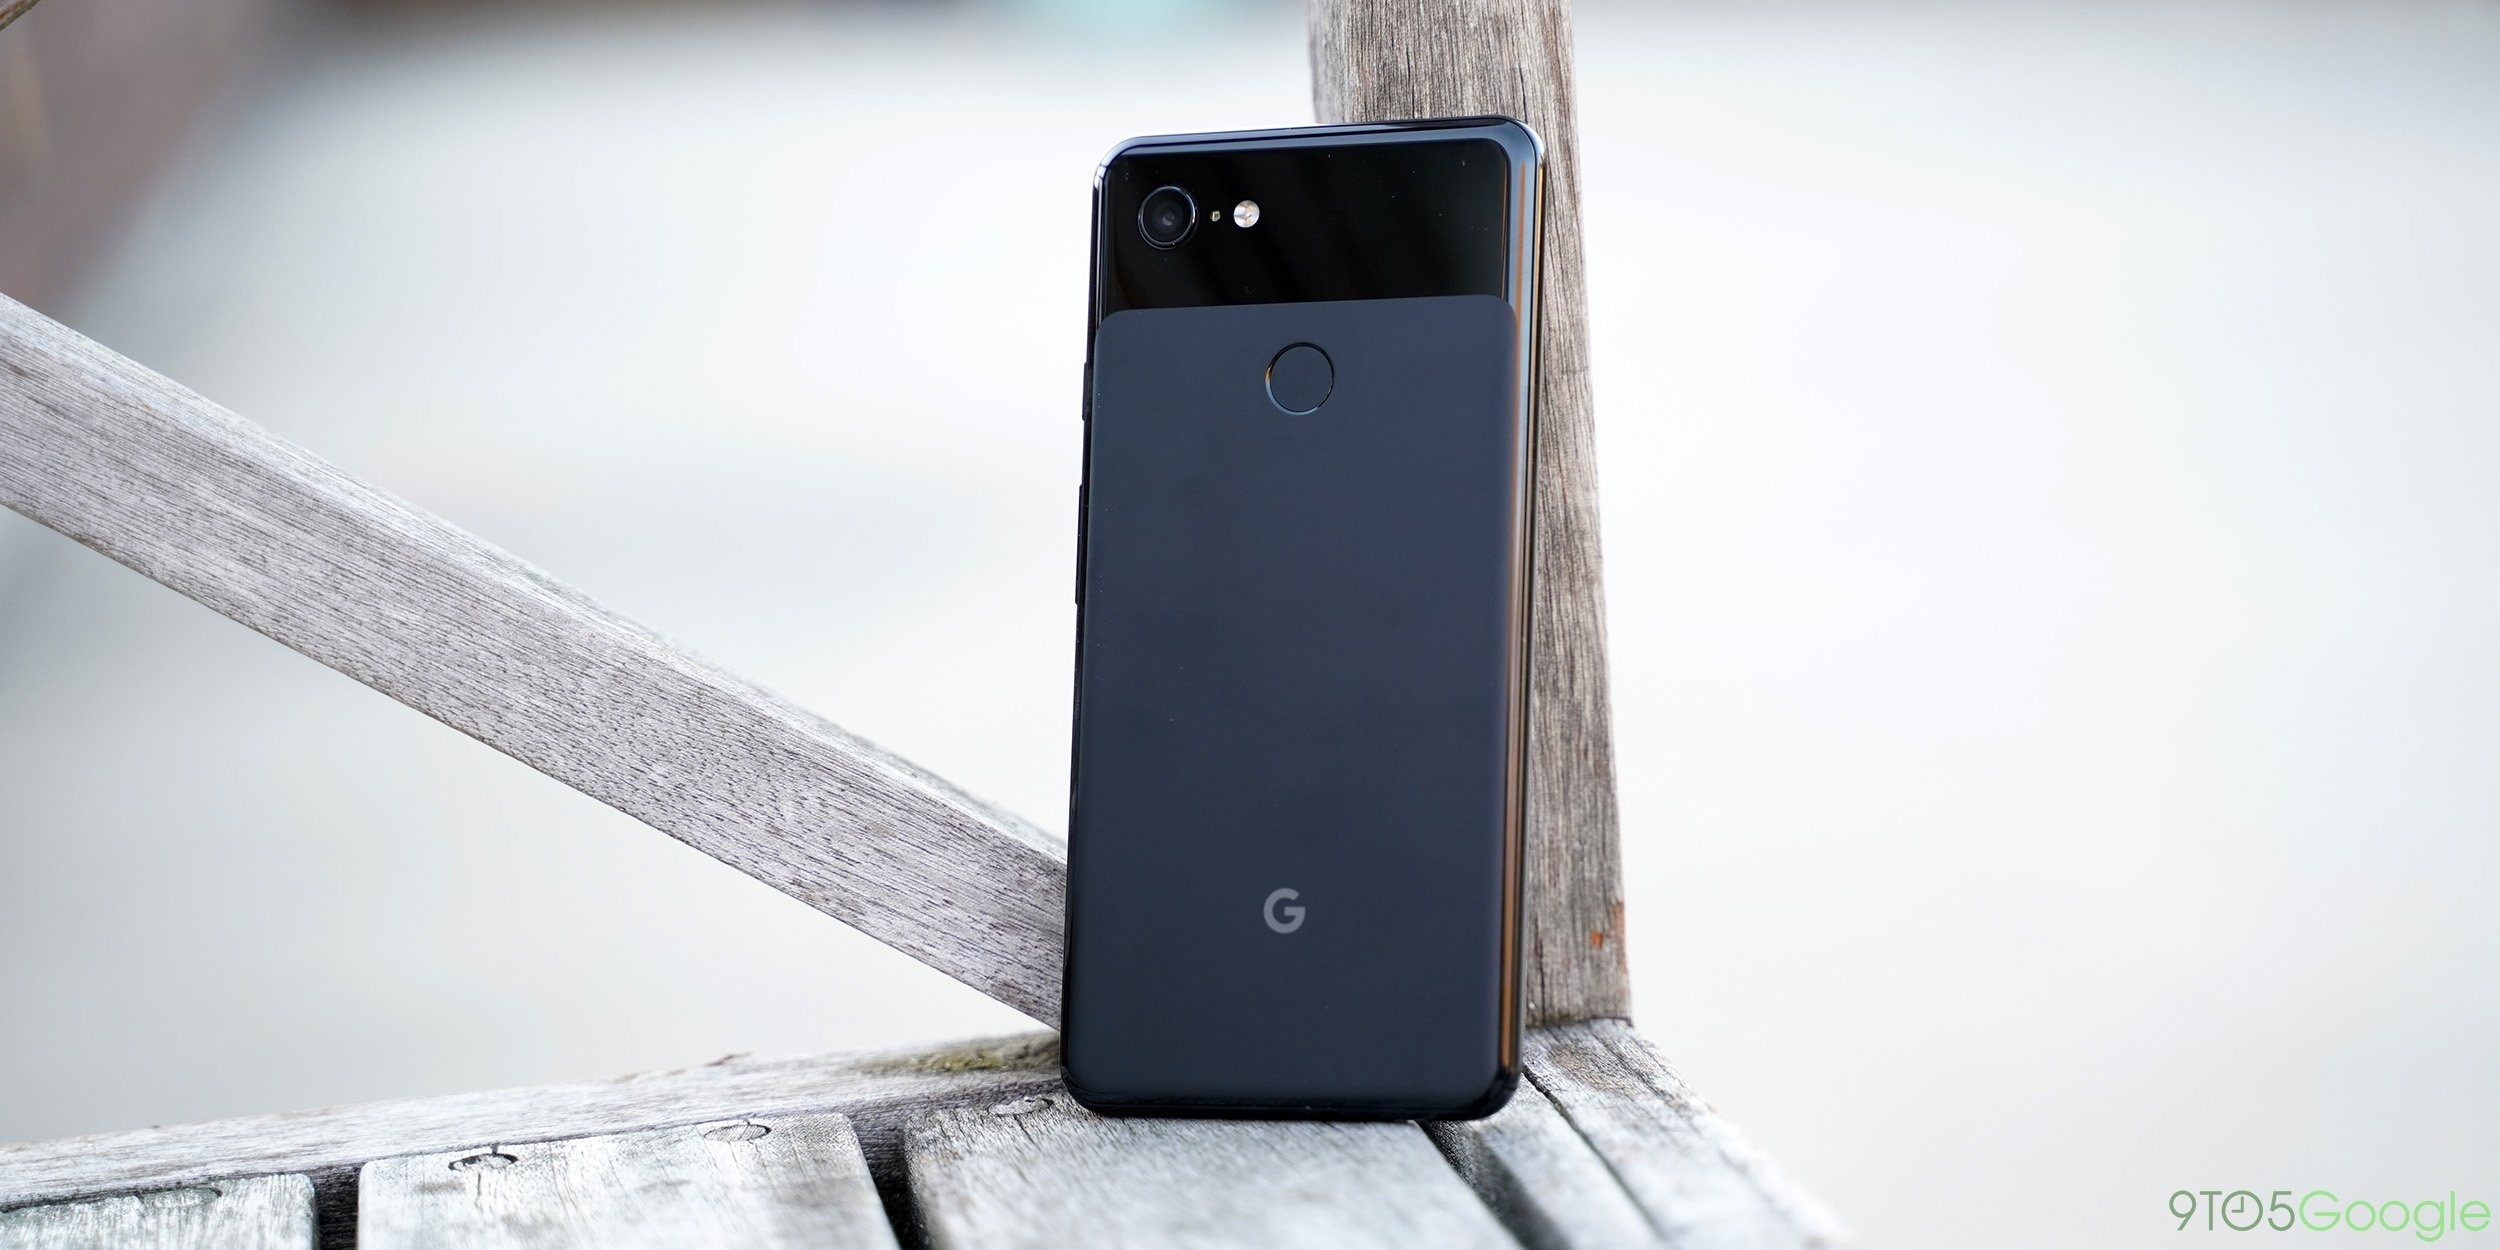 Score a $300 gift card when you purchase a Google Pixel 3/XL at Target